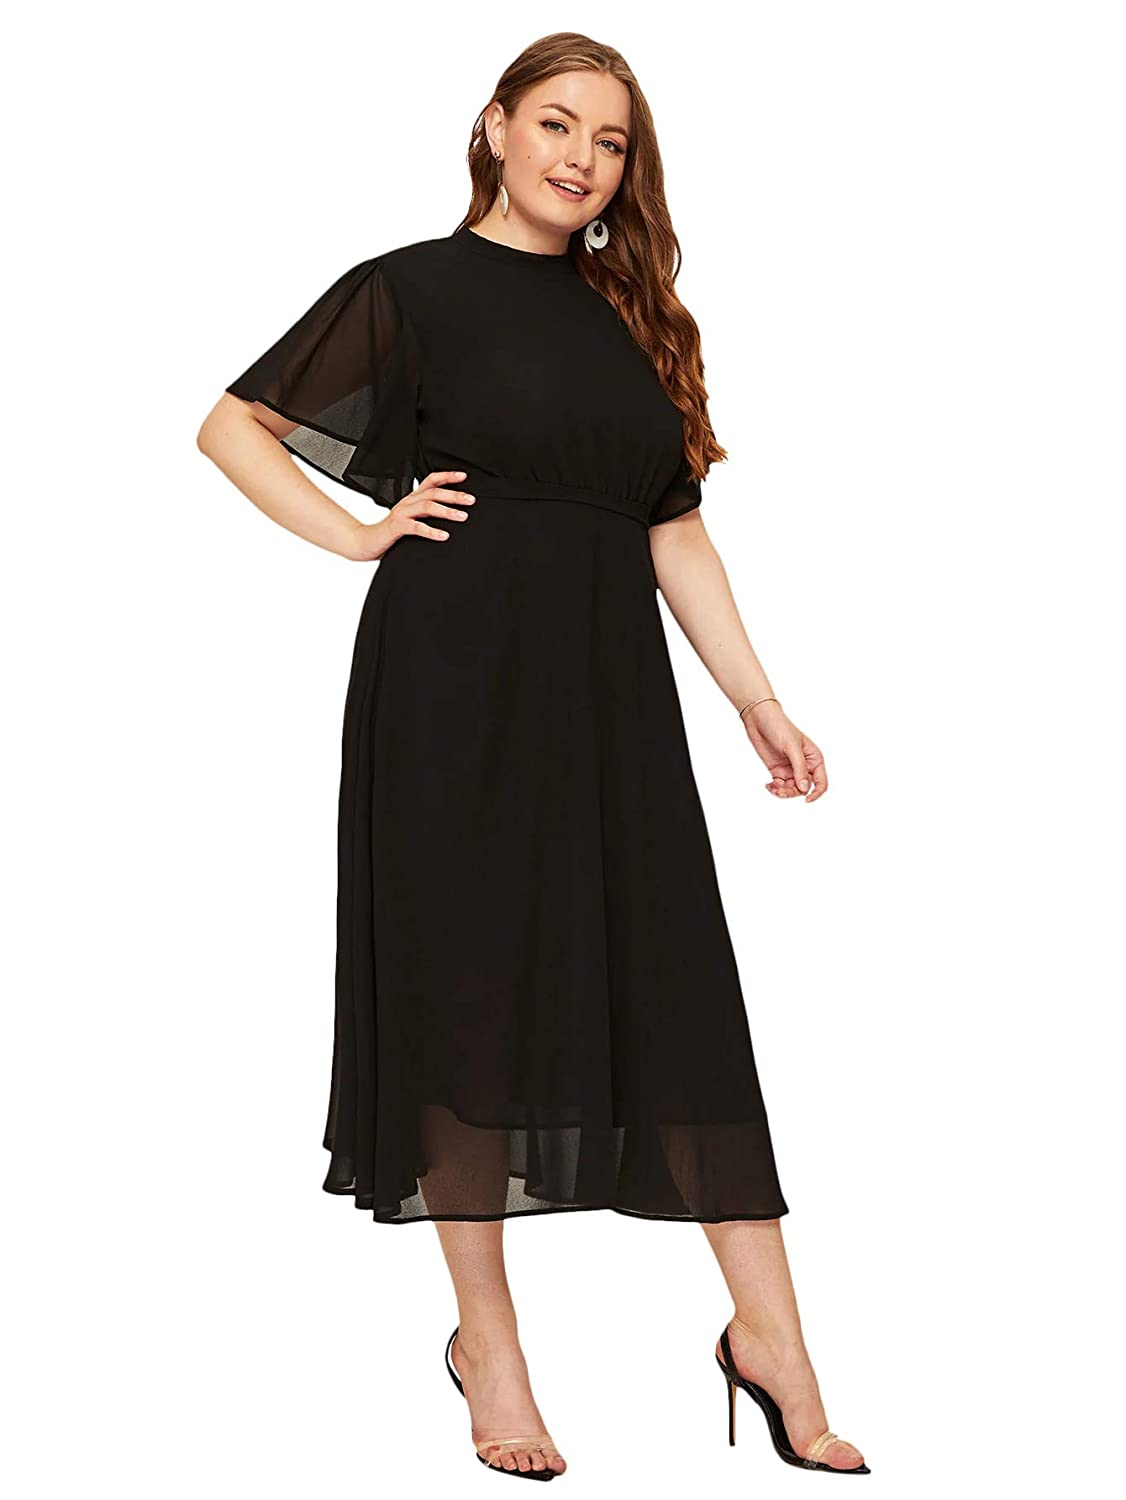 500 Vintage Style Dresses for Sale | Vintage Inspired Dresses Milumia Womens Plus Size Formal Chiffon Cocktail Flounce Sleeve Maxi Party Dress $36.99 AT vintagedancer.com